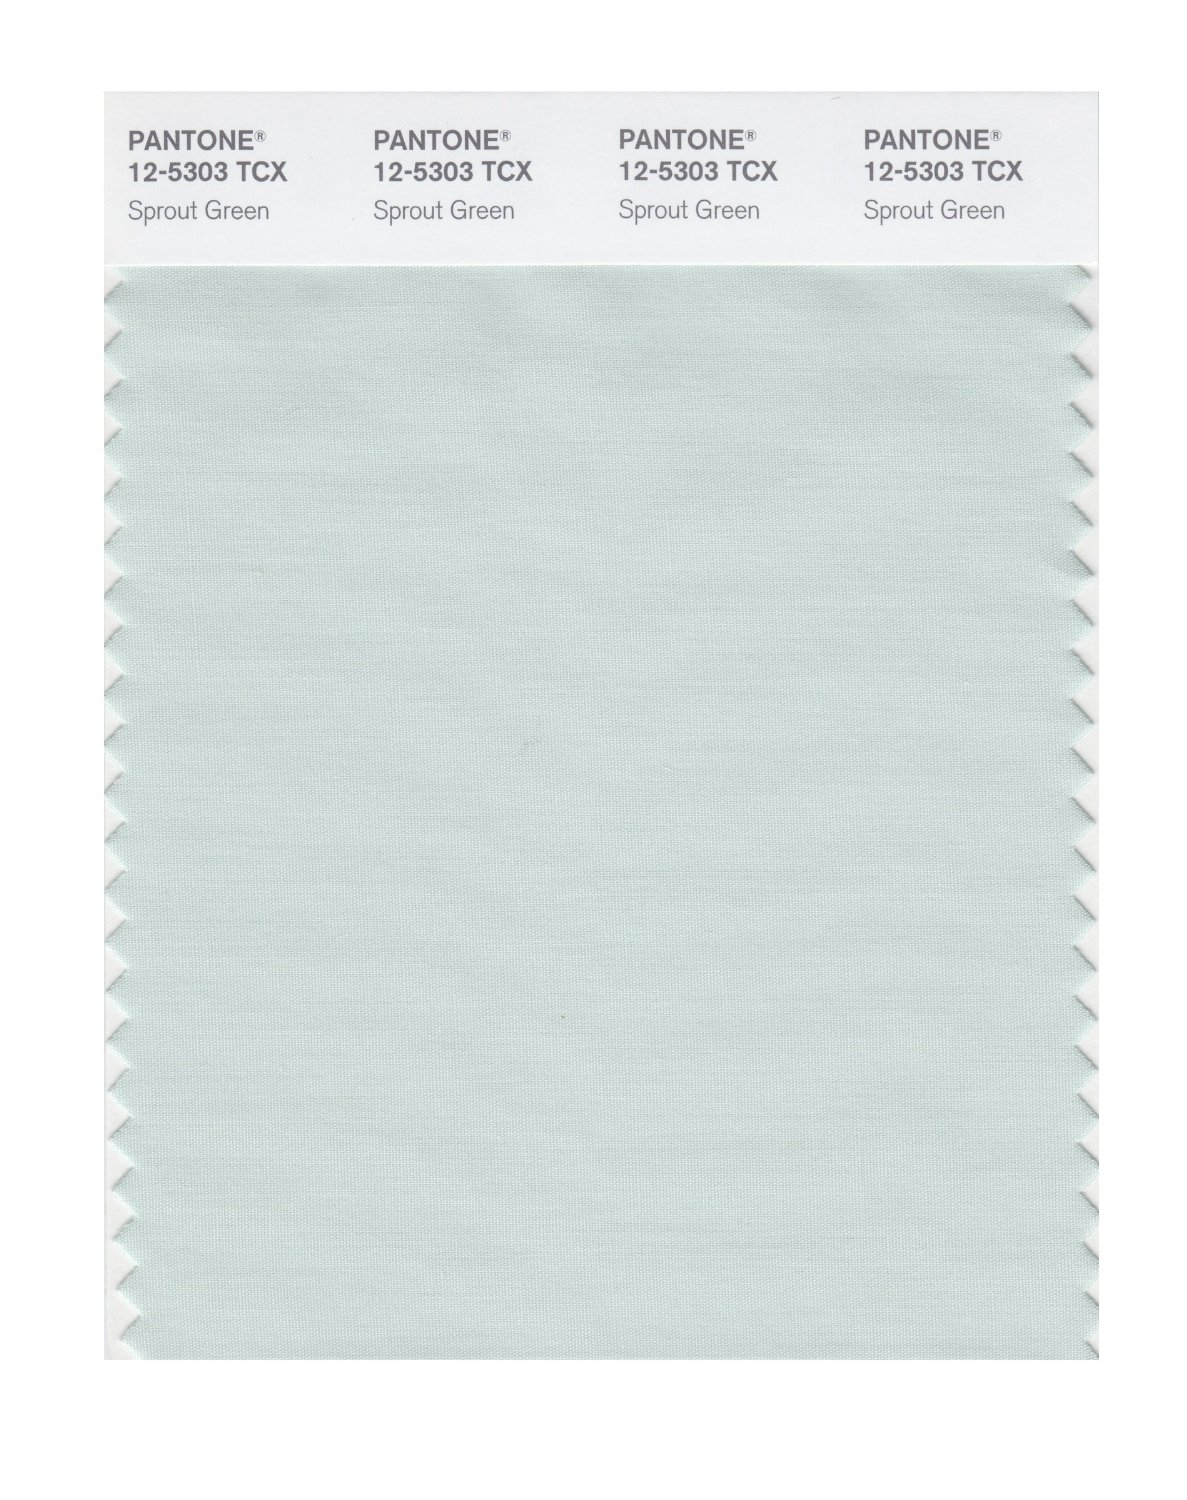 Pantone Smart Swatch 12-5303 Sprout Green